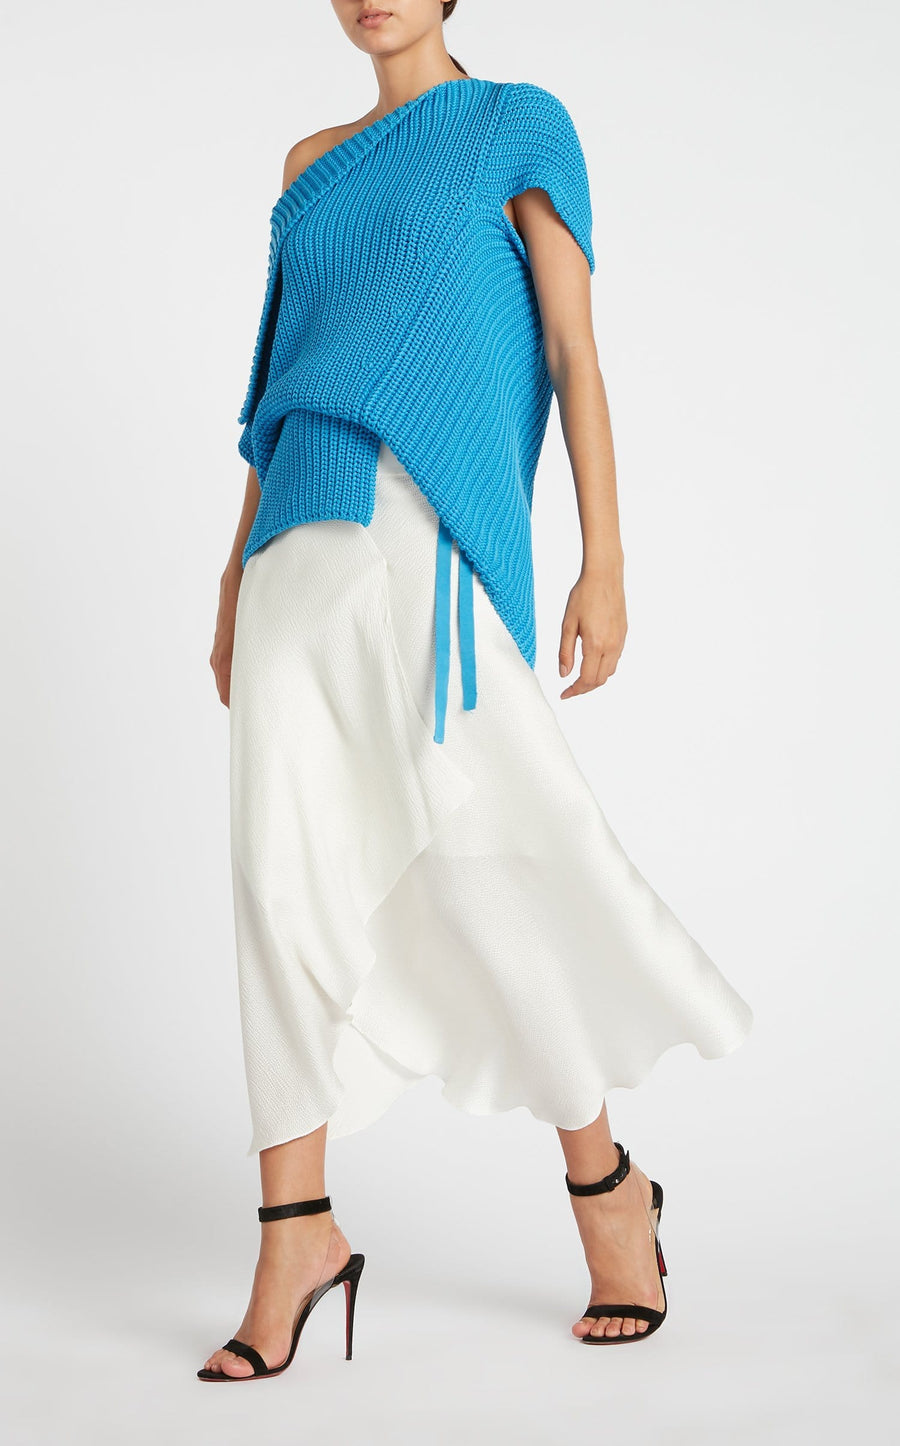 Hurst Skirt In White from Roland Mouret